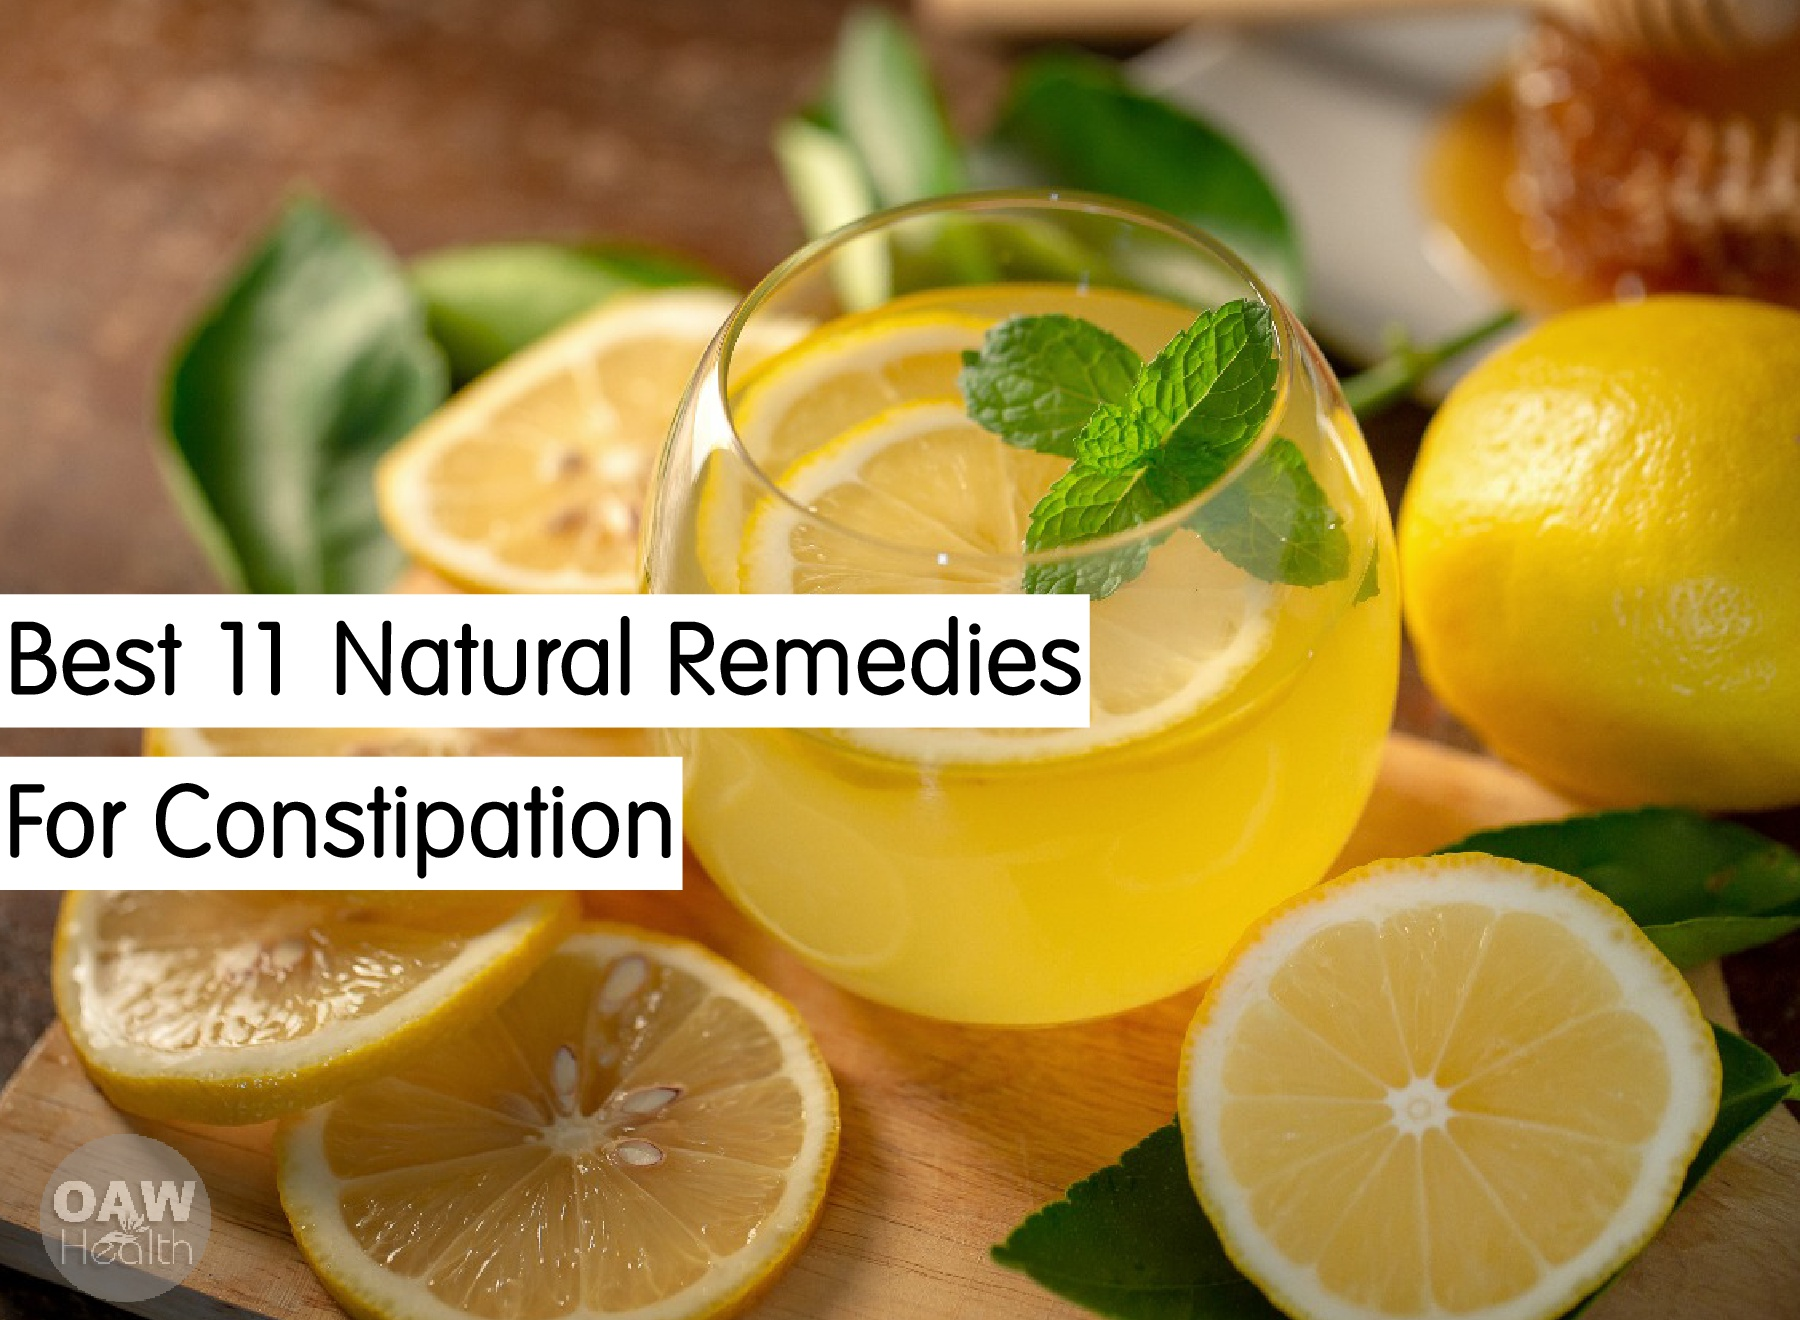 Best 11 Natural Remedies for Constipation